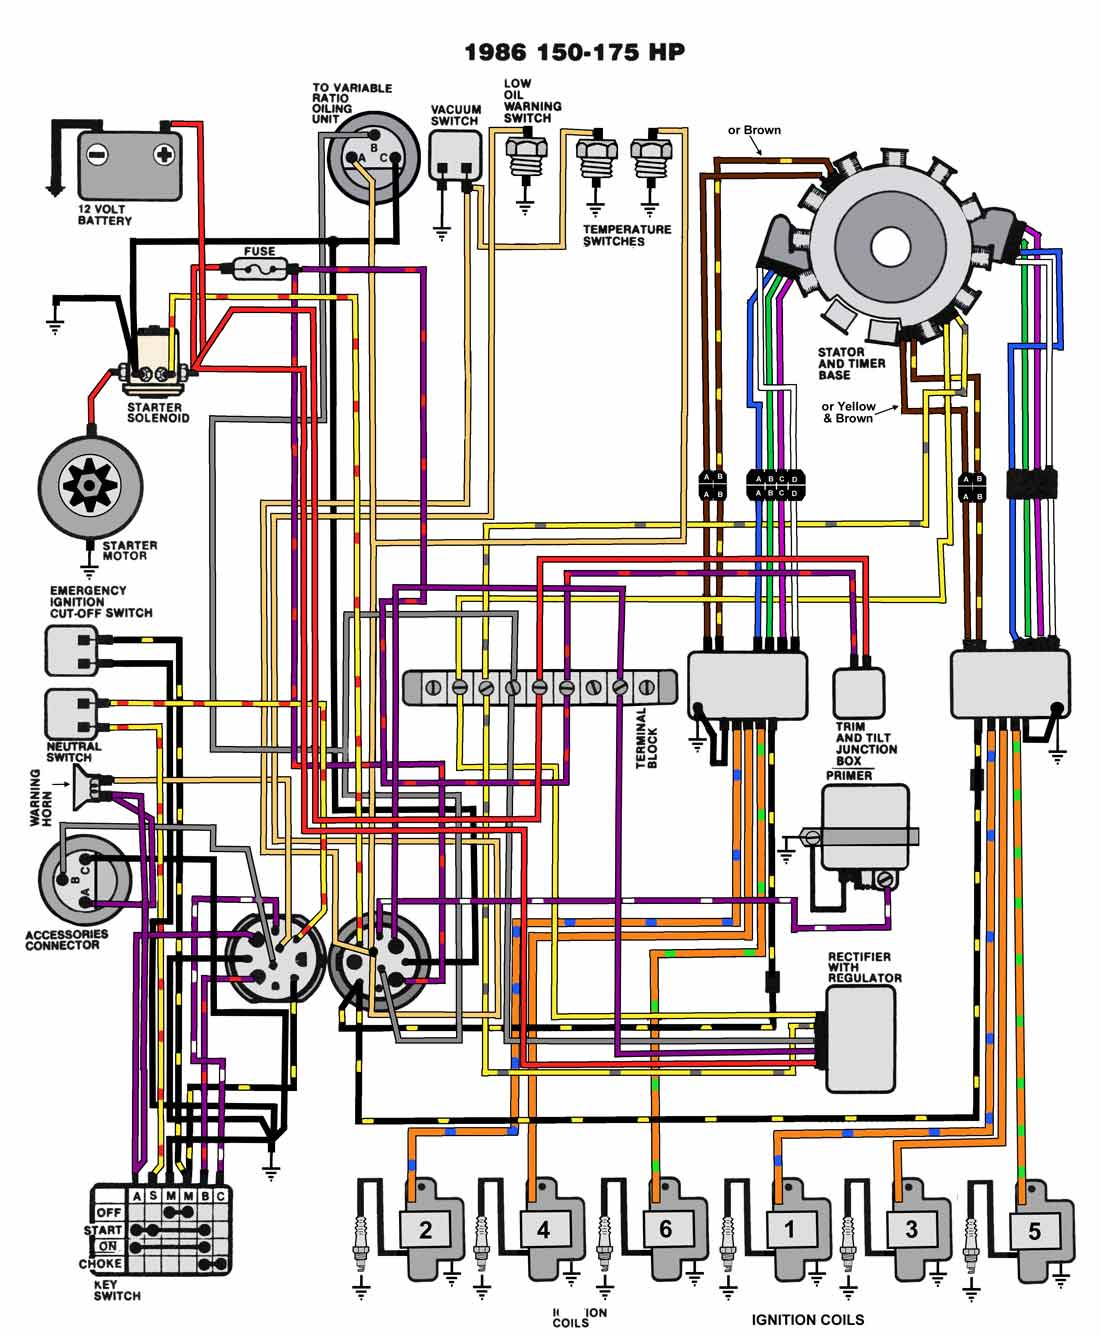 Omc Kill Switch Wiring Diagram | Wiring Diagram Omc Ignition Switch Wiring Diagram Kill on